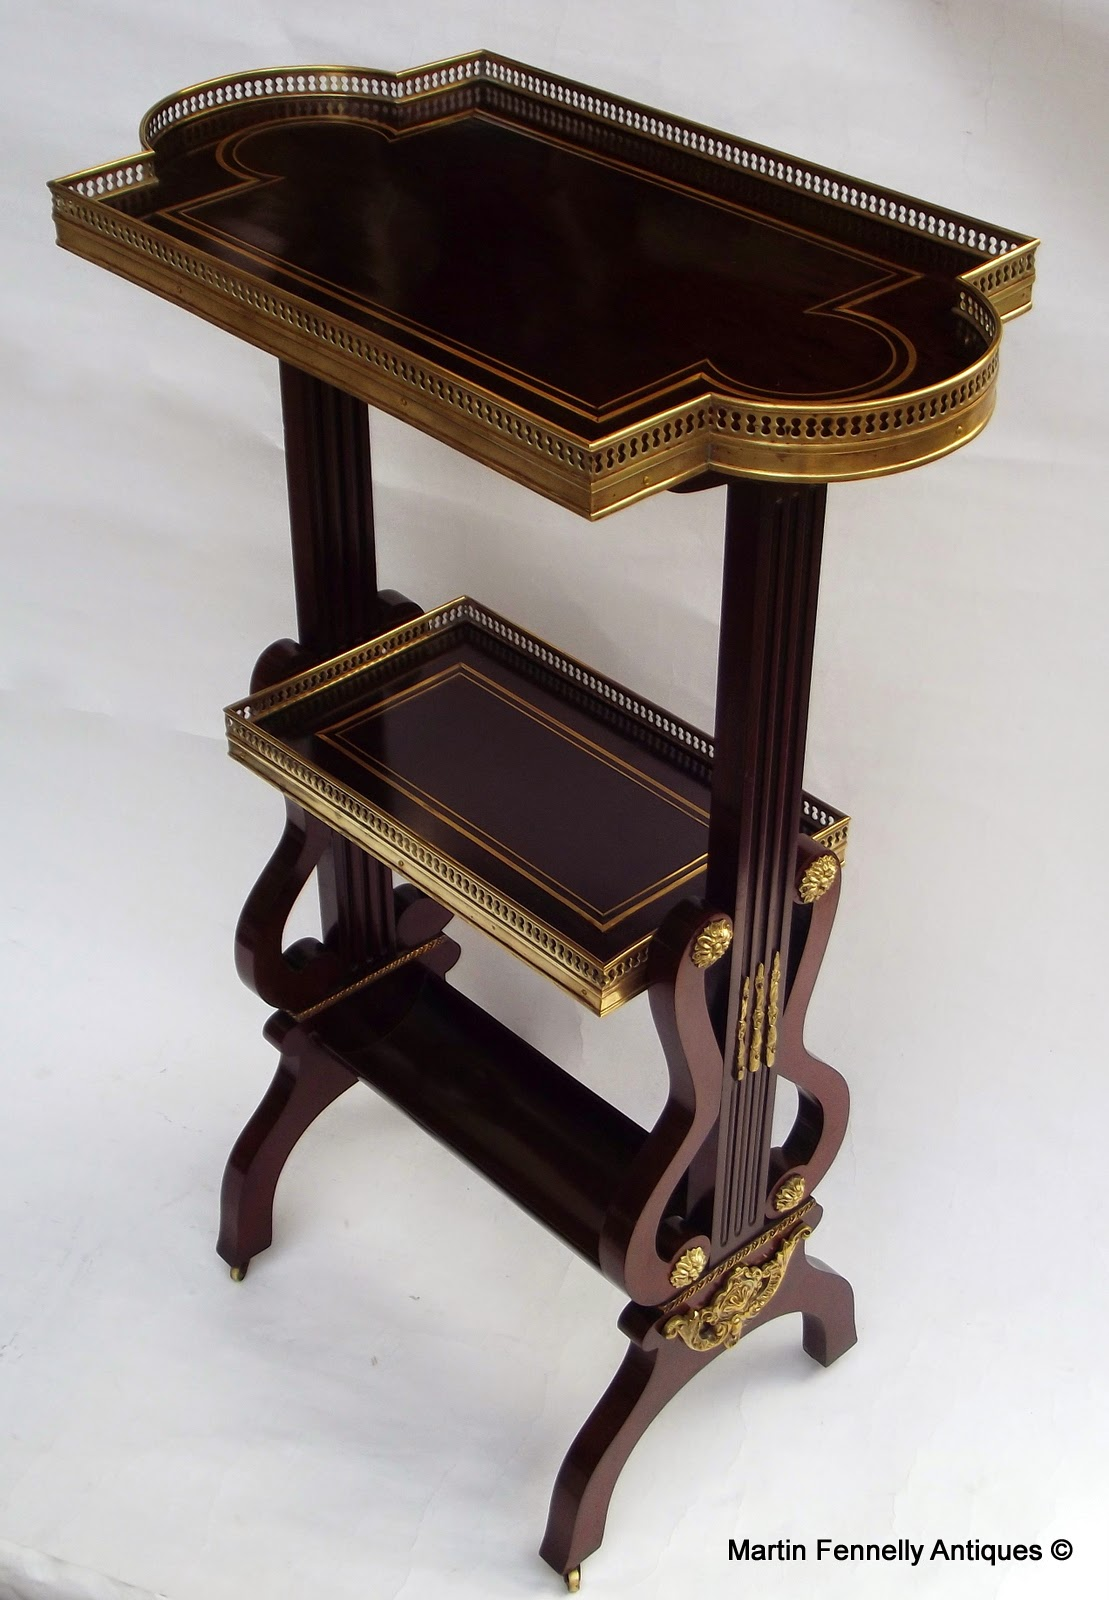 http://www.fennelly.net/Antiques/Newest%20Listings%20-%20Art%20and%20Antique%20Gallery%20Dublin/523%20French%20Rosewood%20Gilt%20Brass%20Inlaid%20Occasional%20Table%20-%20Circa%201880.aspx